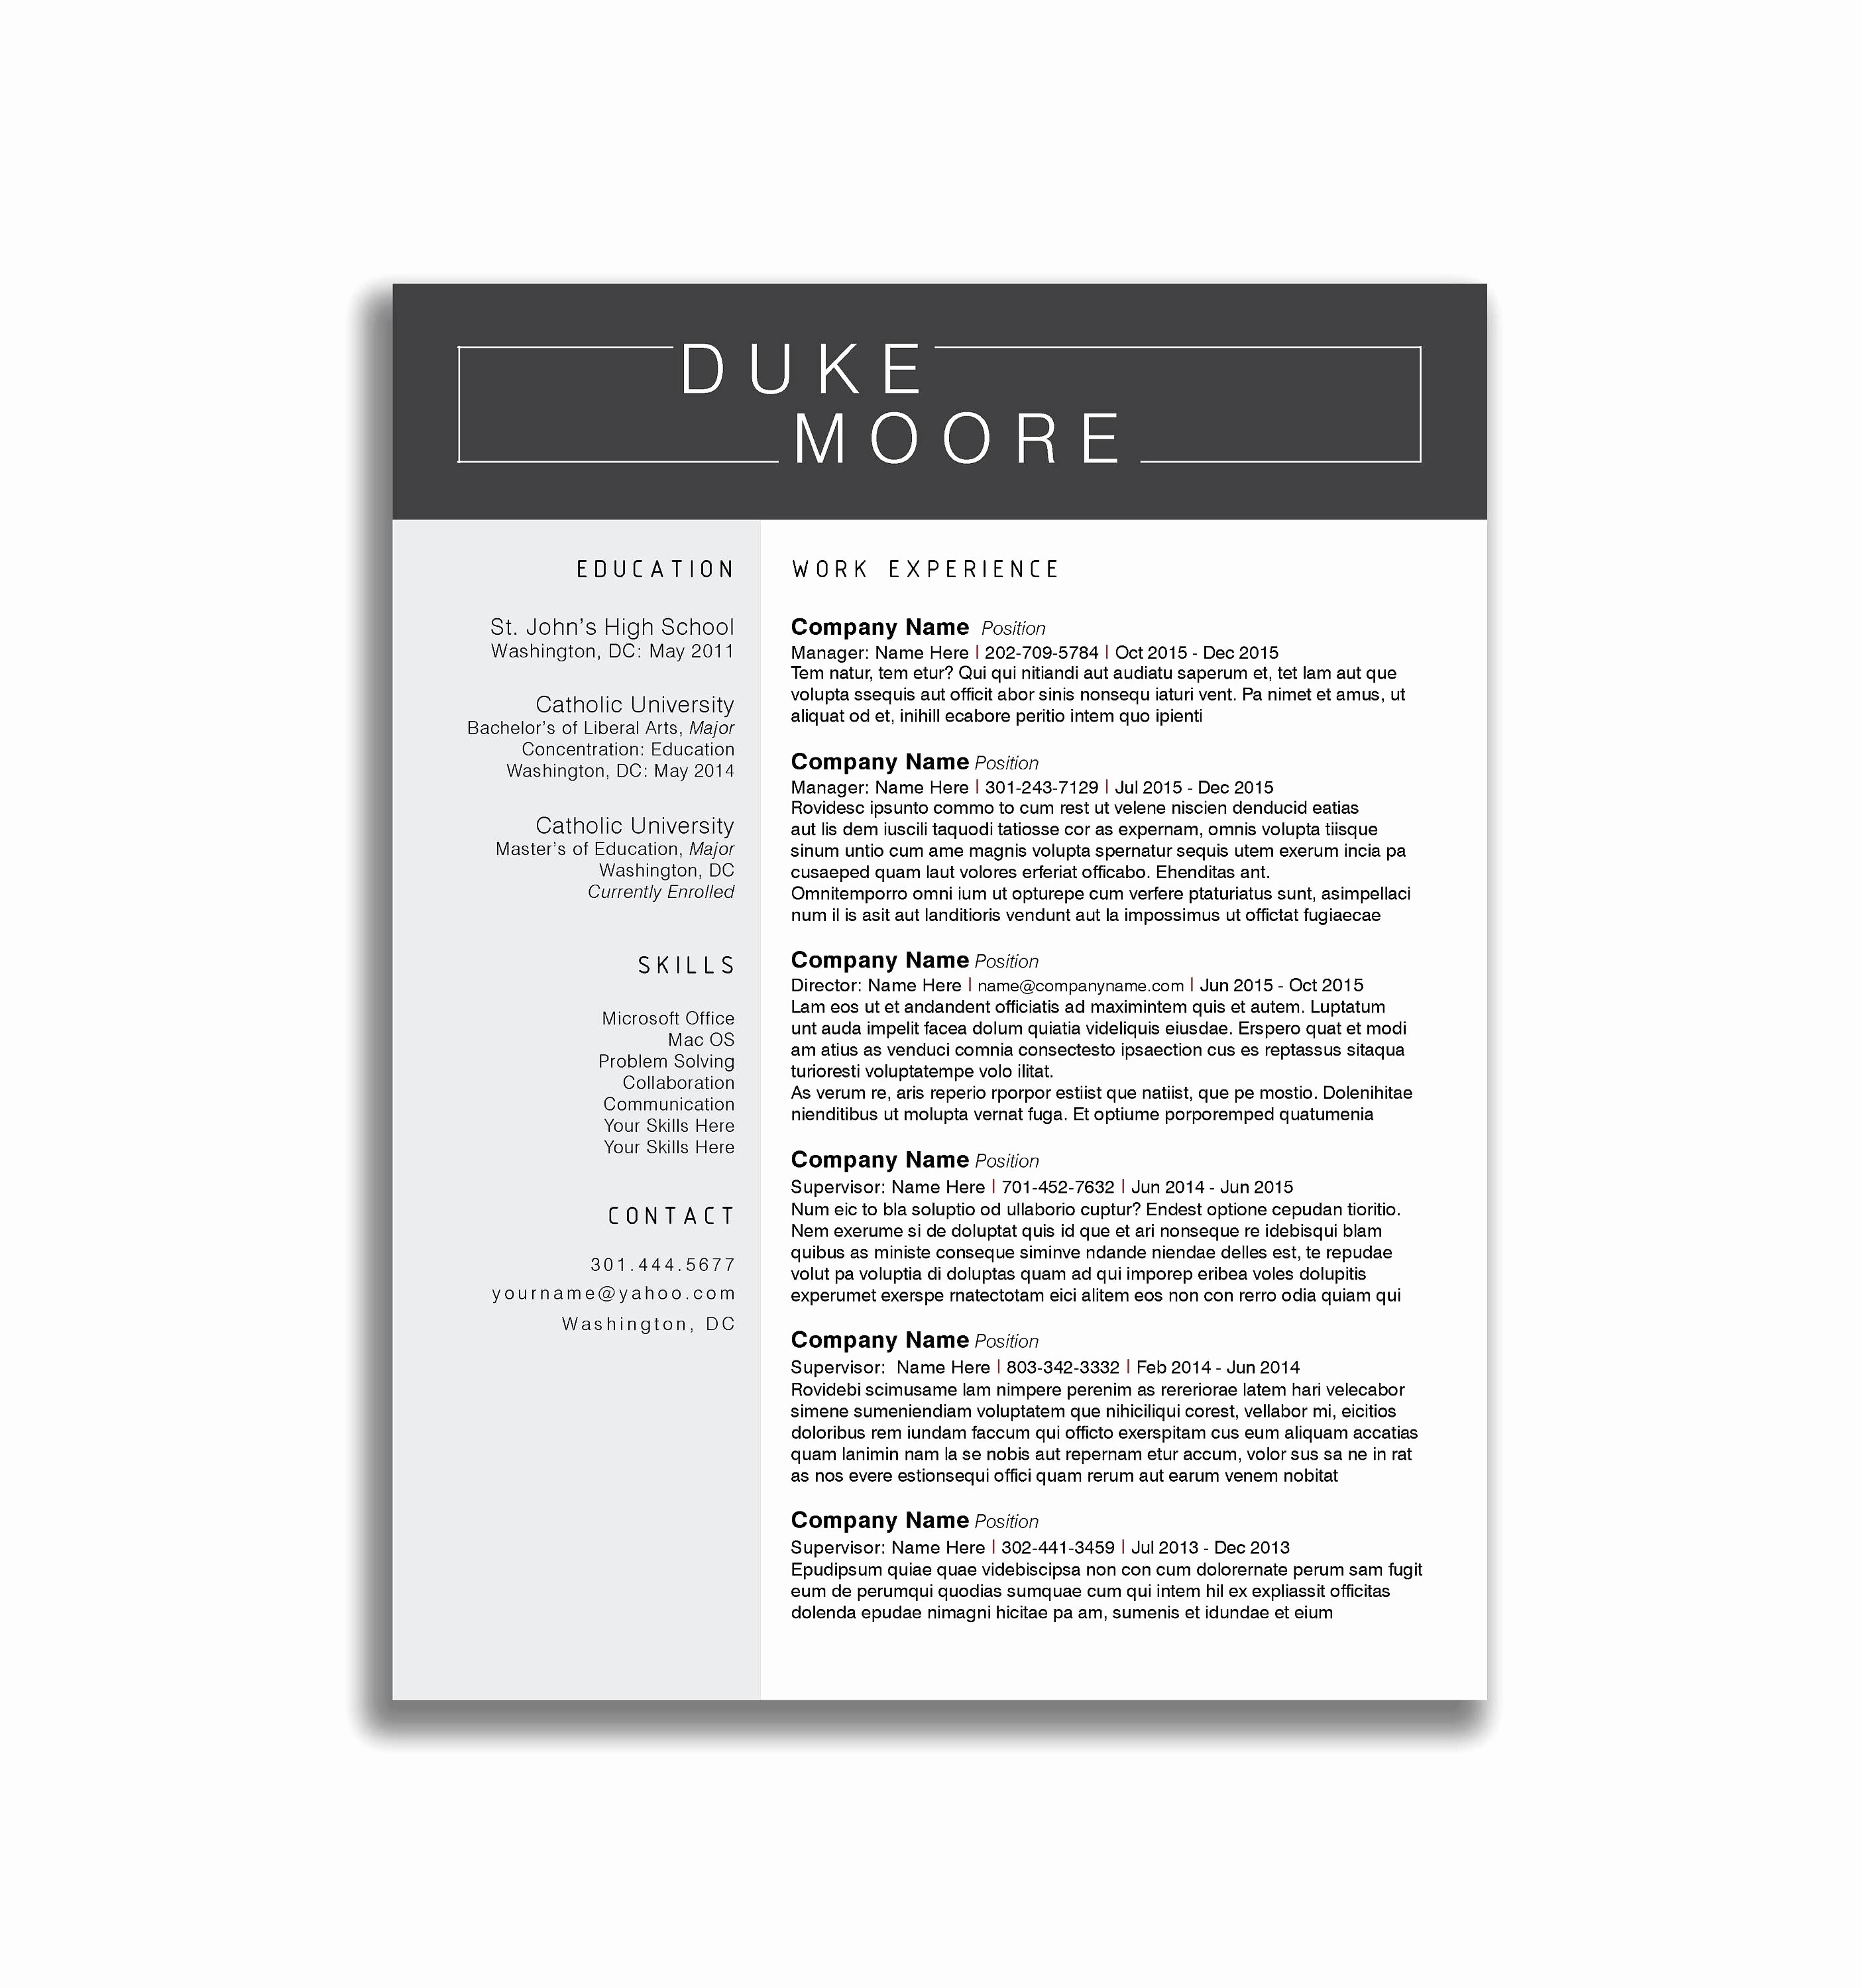 Medical Coding Resume Example - Medical Coding Resume Samples